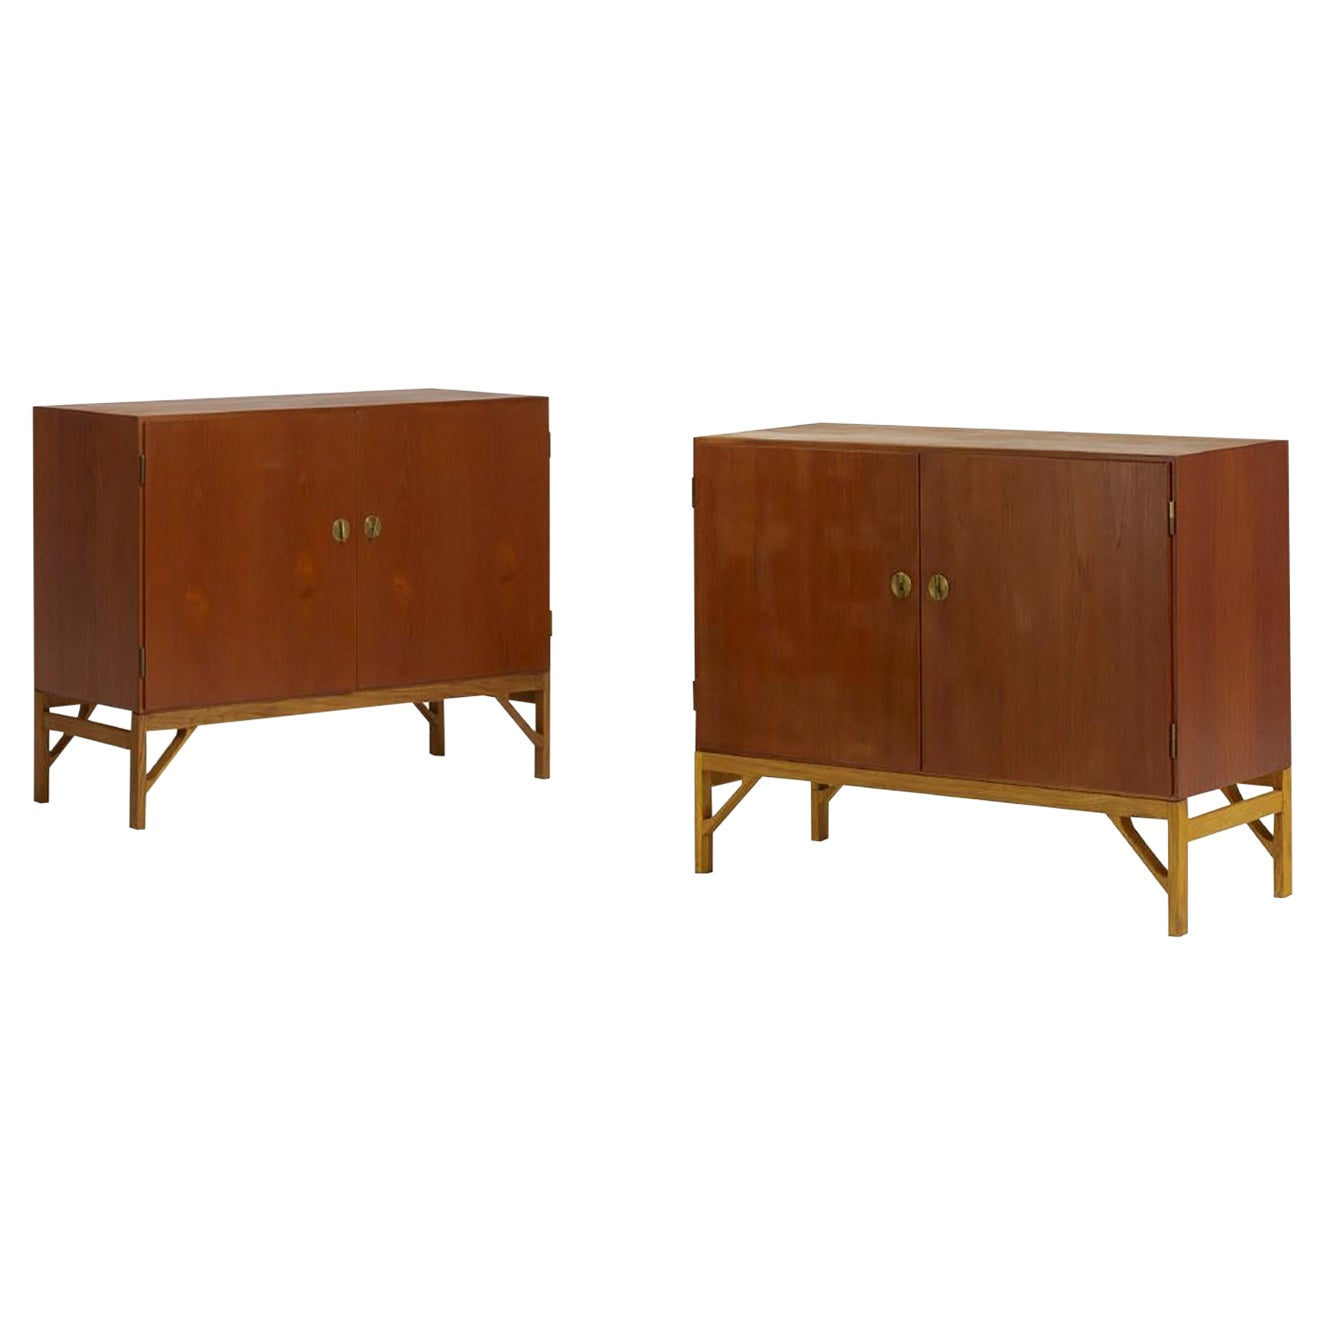 Pair of Teak, Oak and Brass Cabinets Designed by Borge Mogensen